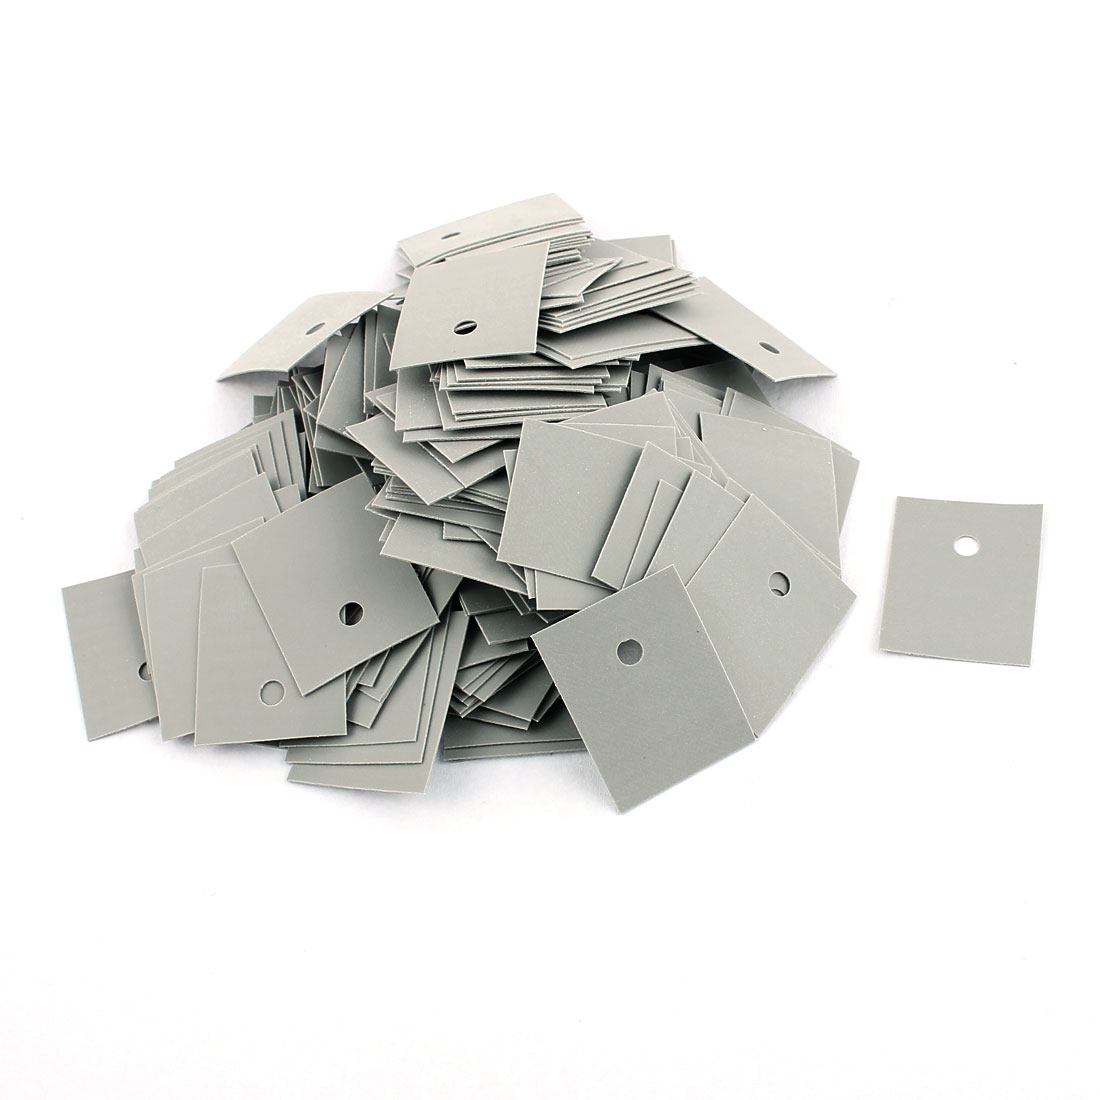 250 Pcs 25mm x 20mm x 0.3mm Silicone Thermal Insulation Pad Sheet TO-3P